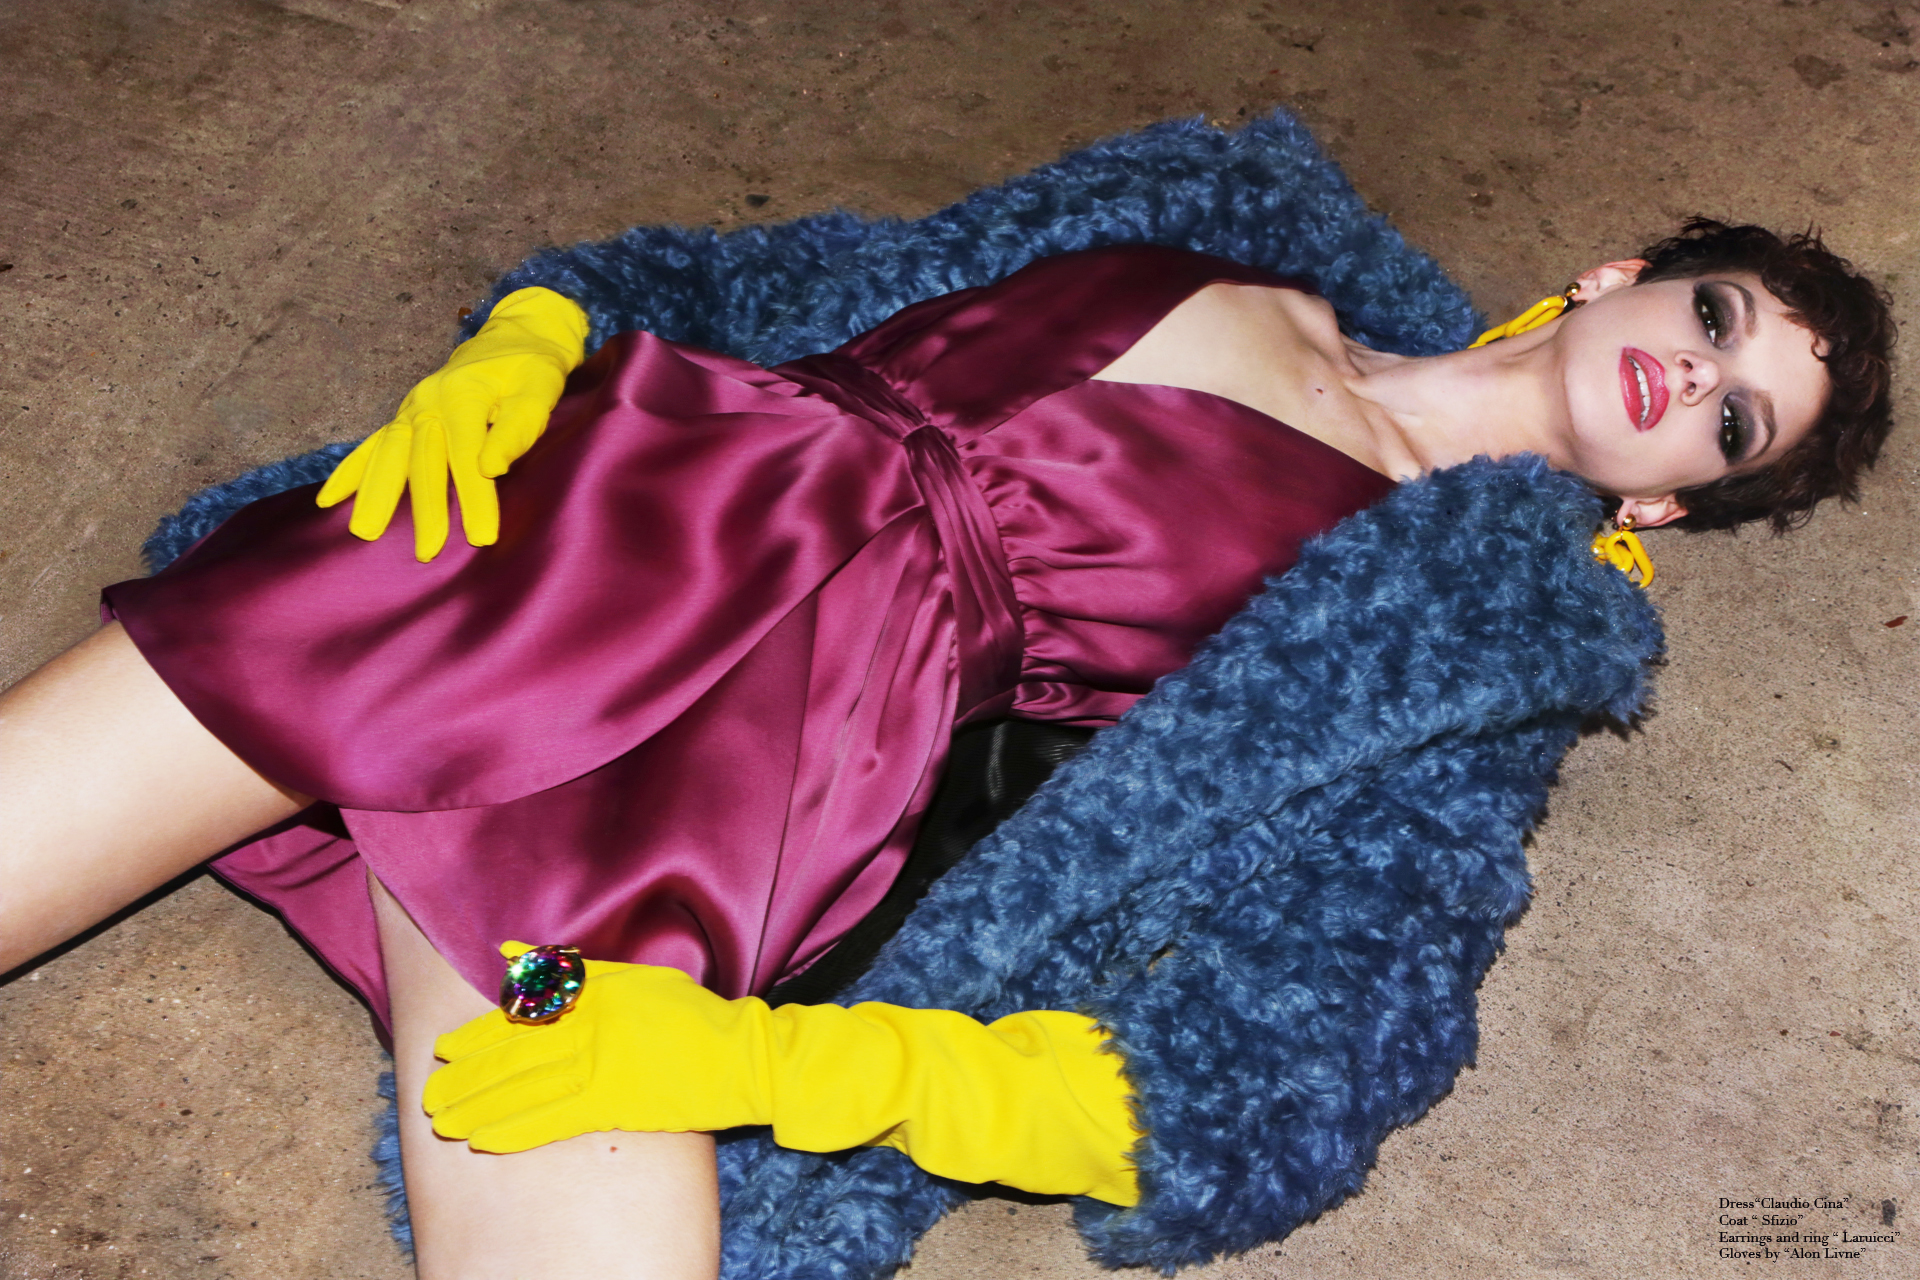 Dress by  Claudio Cina,  Coat by  Sfizio,  Earrings and Ring   by  Laruicci ,  GLOVES BY  ALON LIVNE